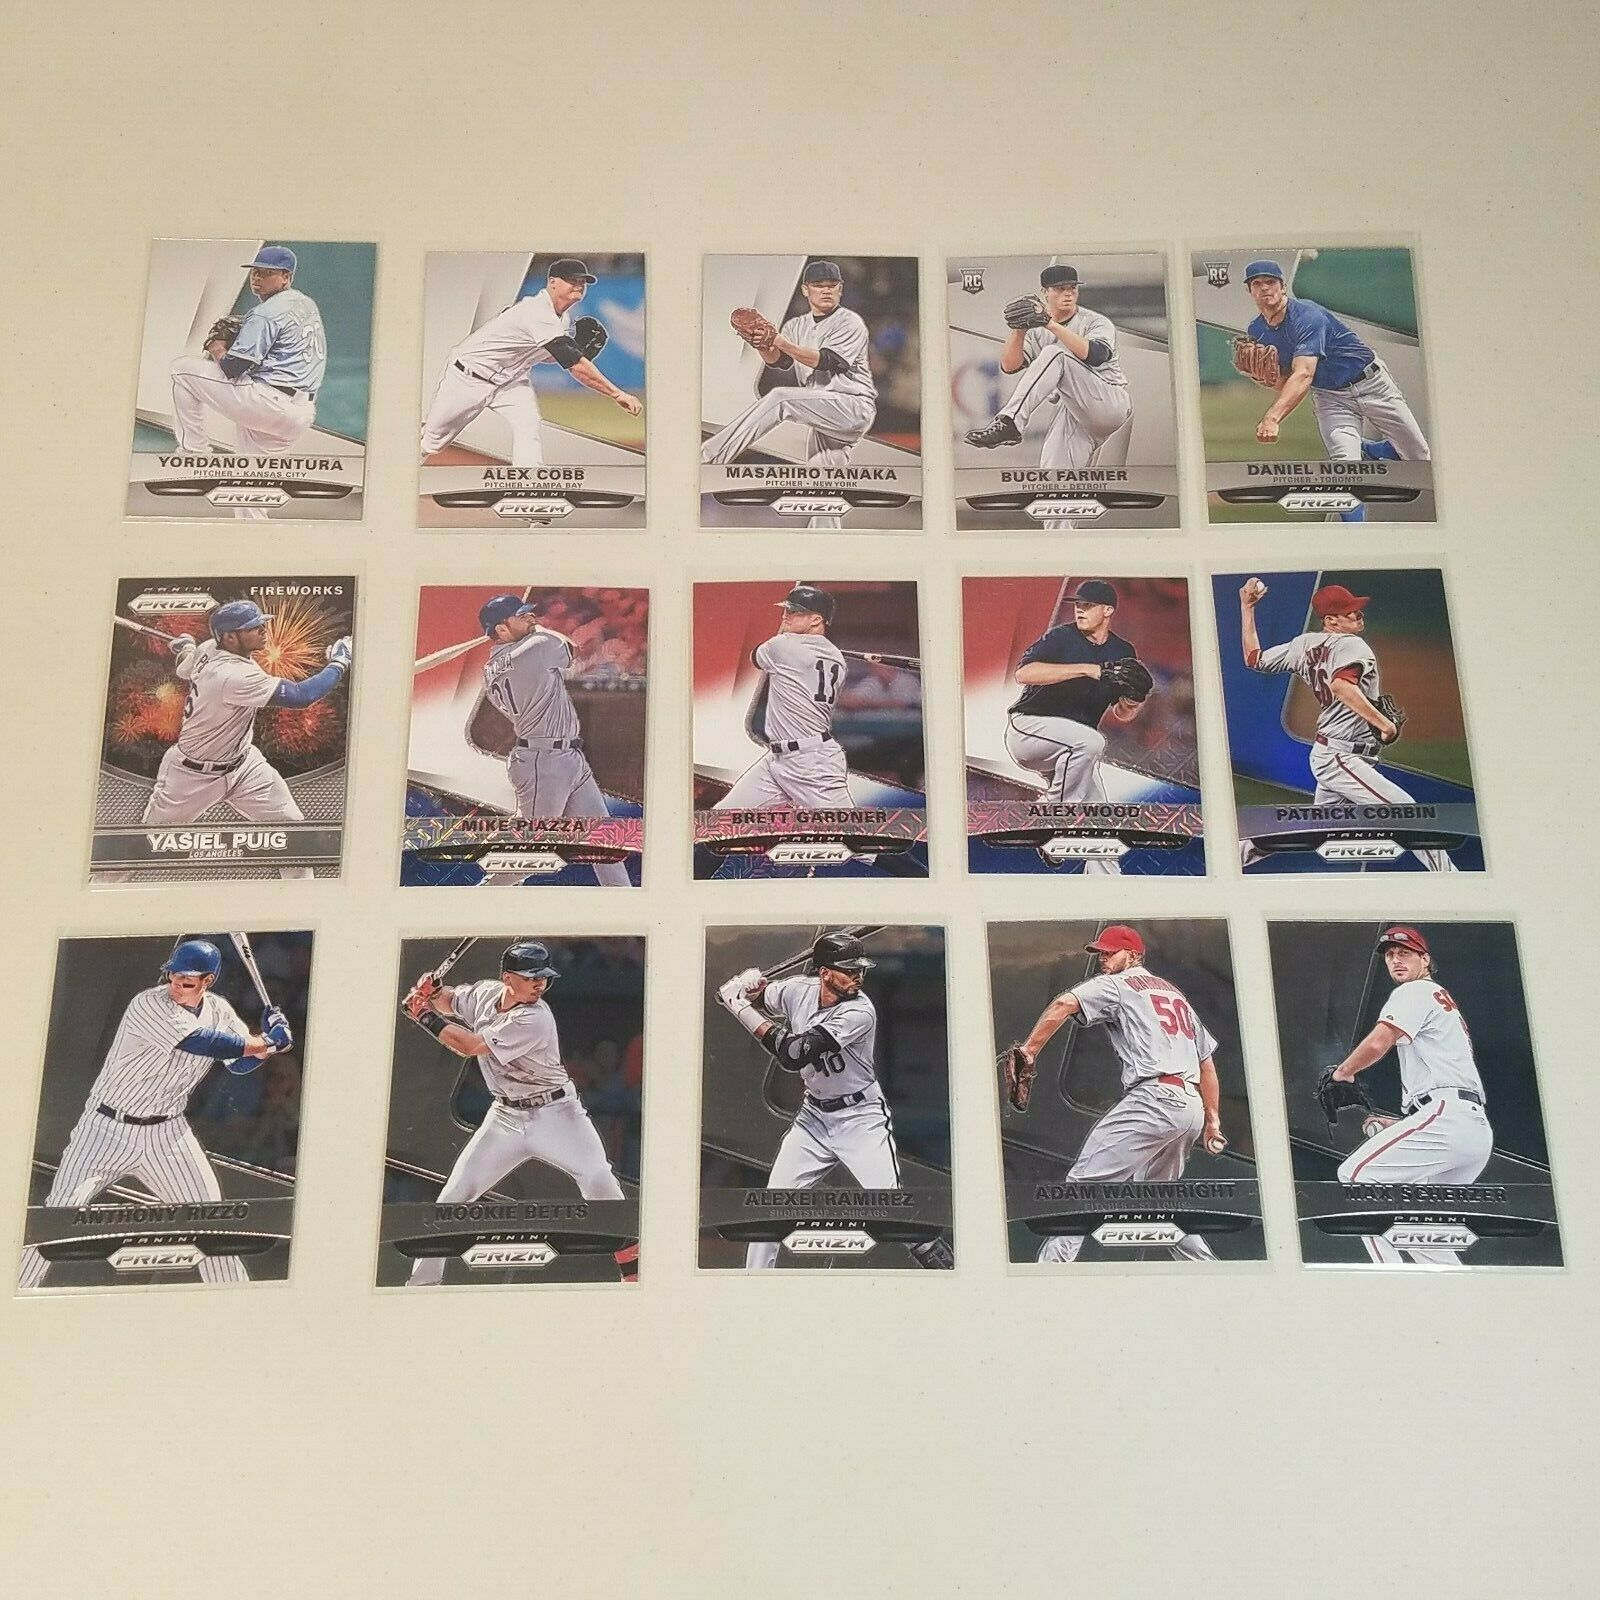 2015 Panini Prizm Red/White/Blue Mojo, Parallels, RC's 15 Baseball Cards Lot - $19.99